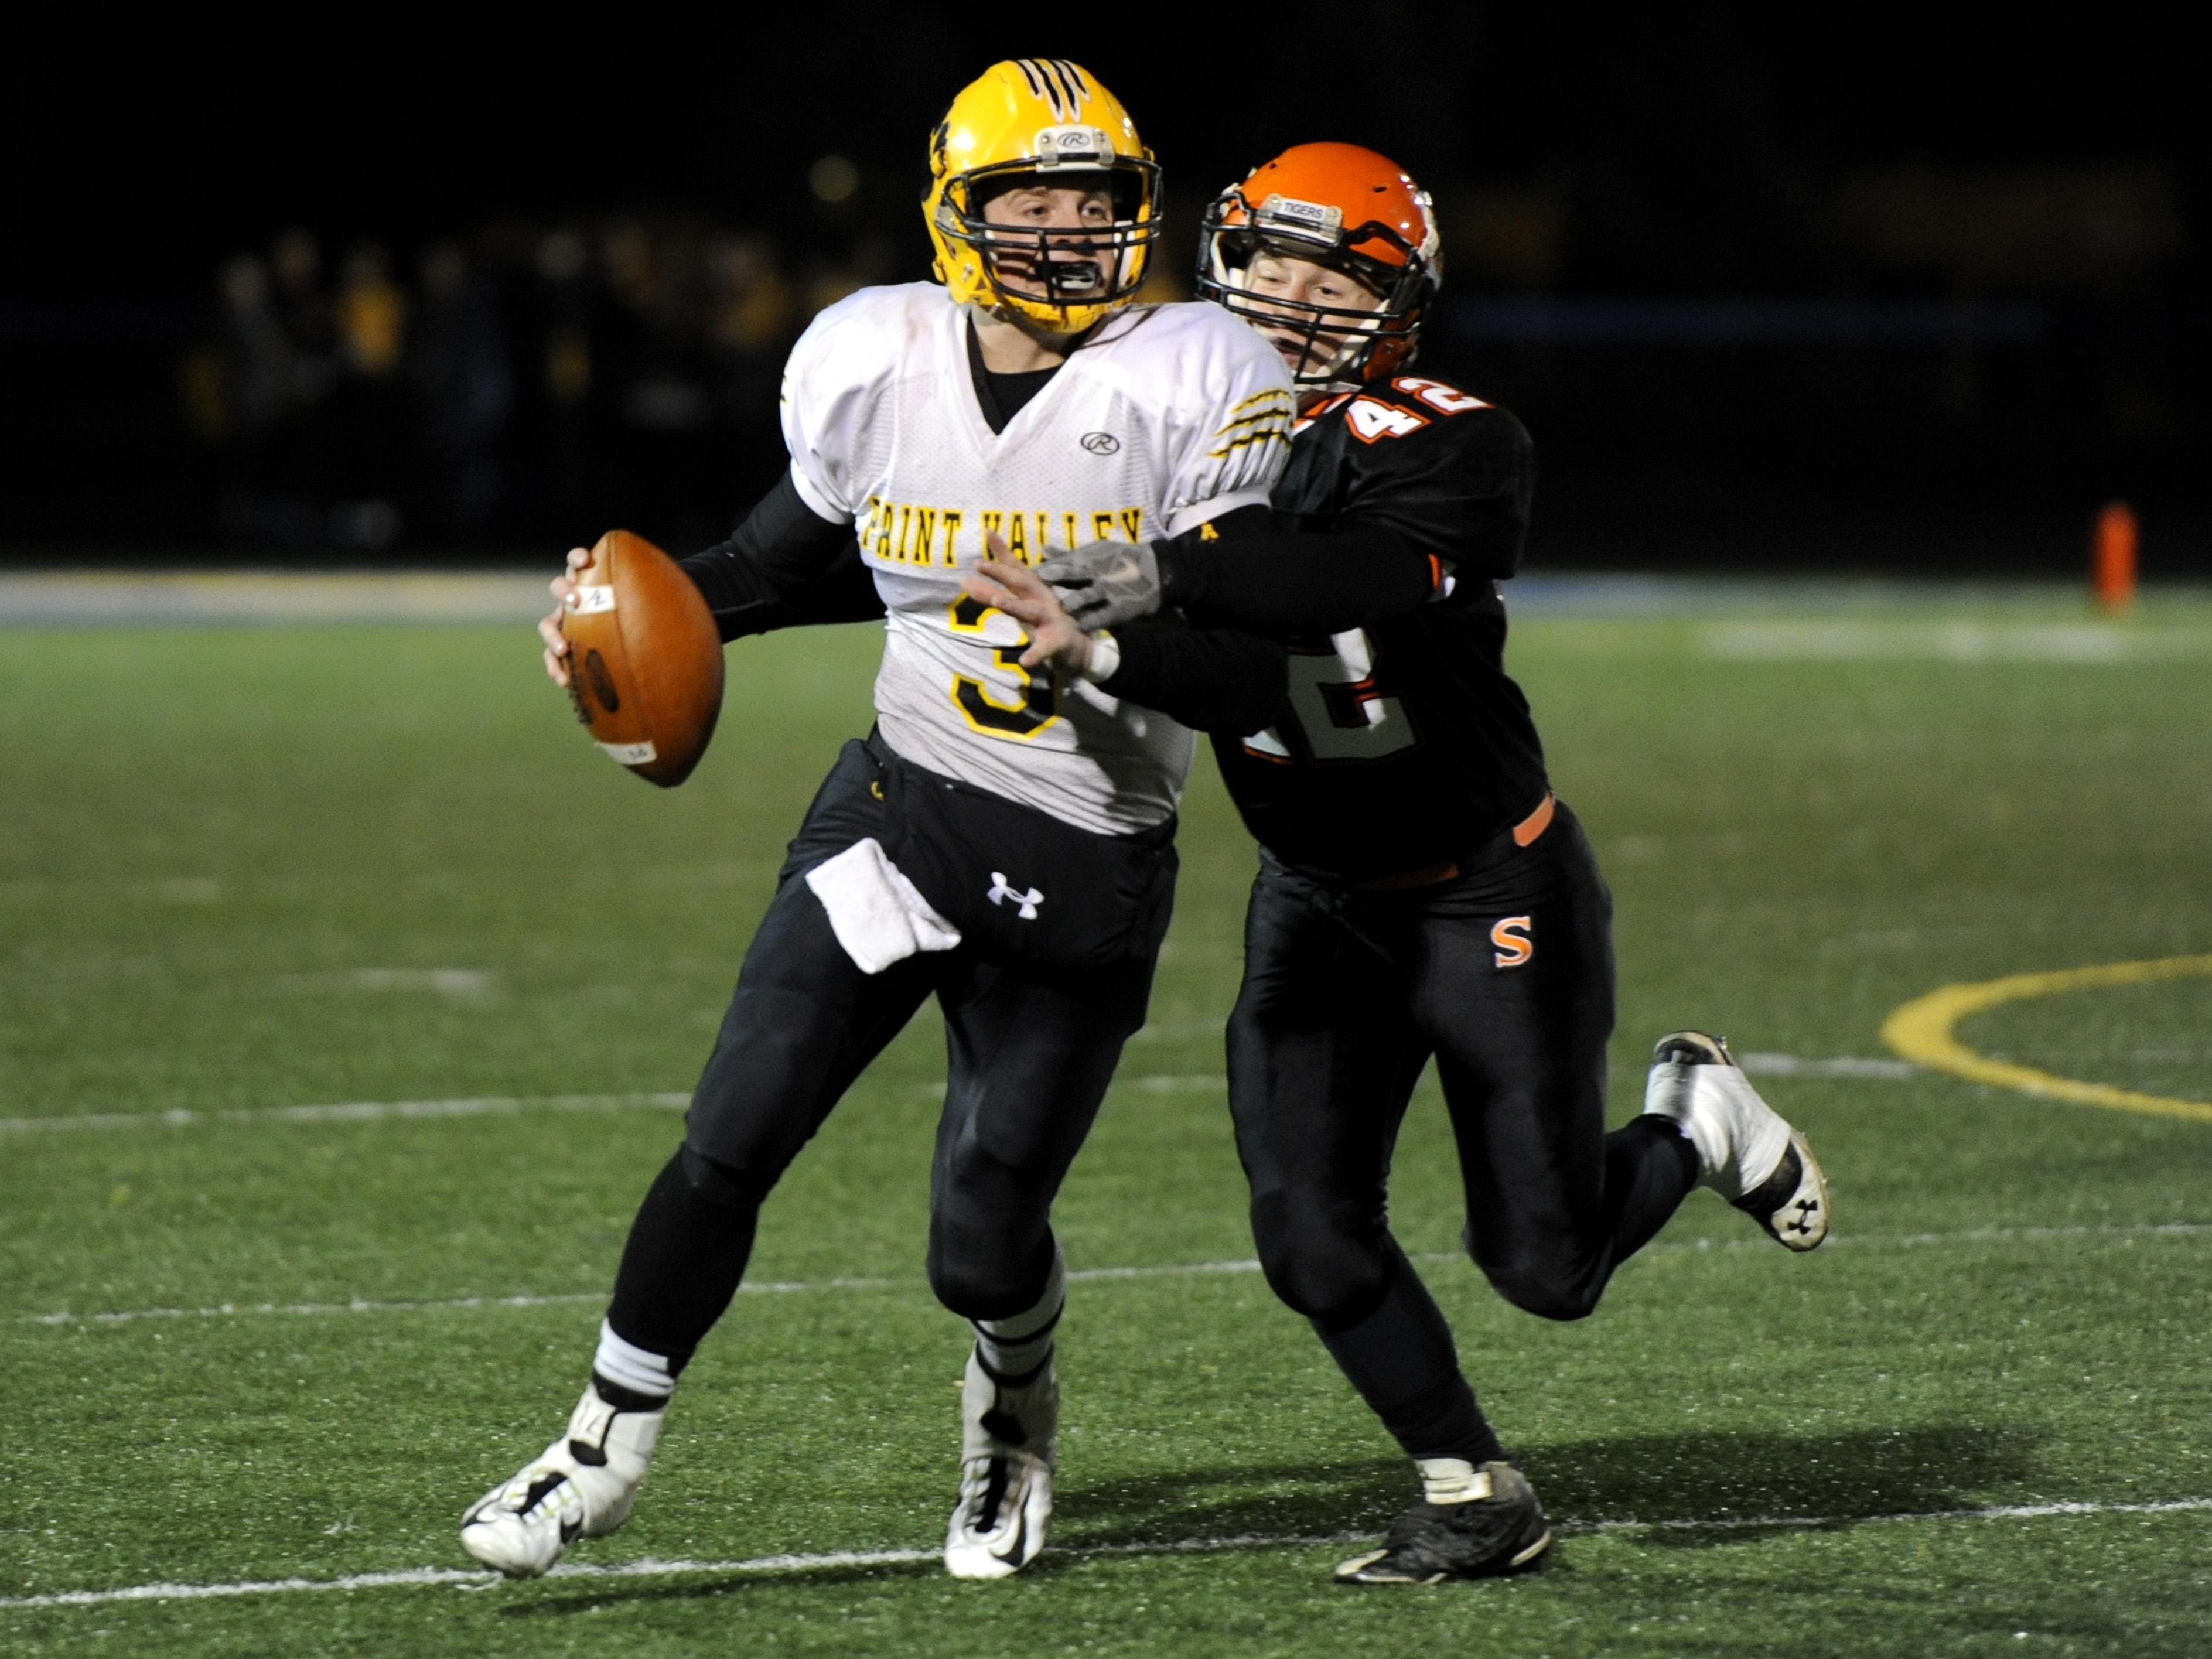 Paint Valley's Anthony McFadden attempts to elude a defender during last year's Division VII regional semifinal against Shadyside at Maysville High School. McFadden, now a senior, will attempt to lead his Bearcats to a third straight playoff appearance in 2015.